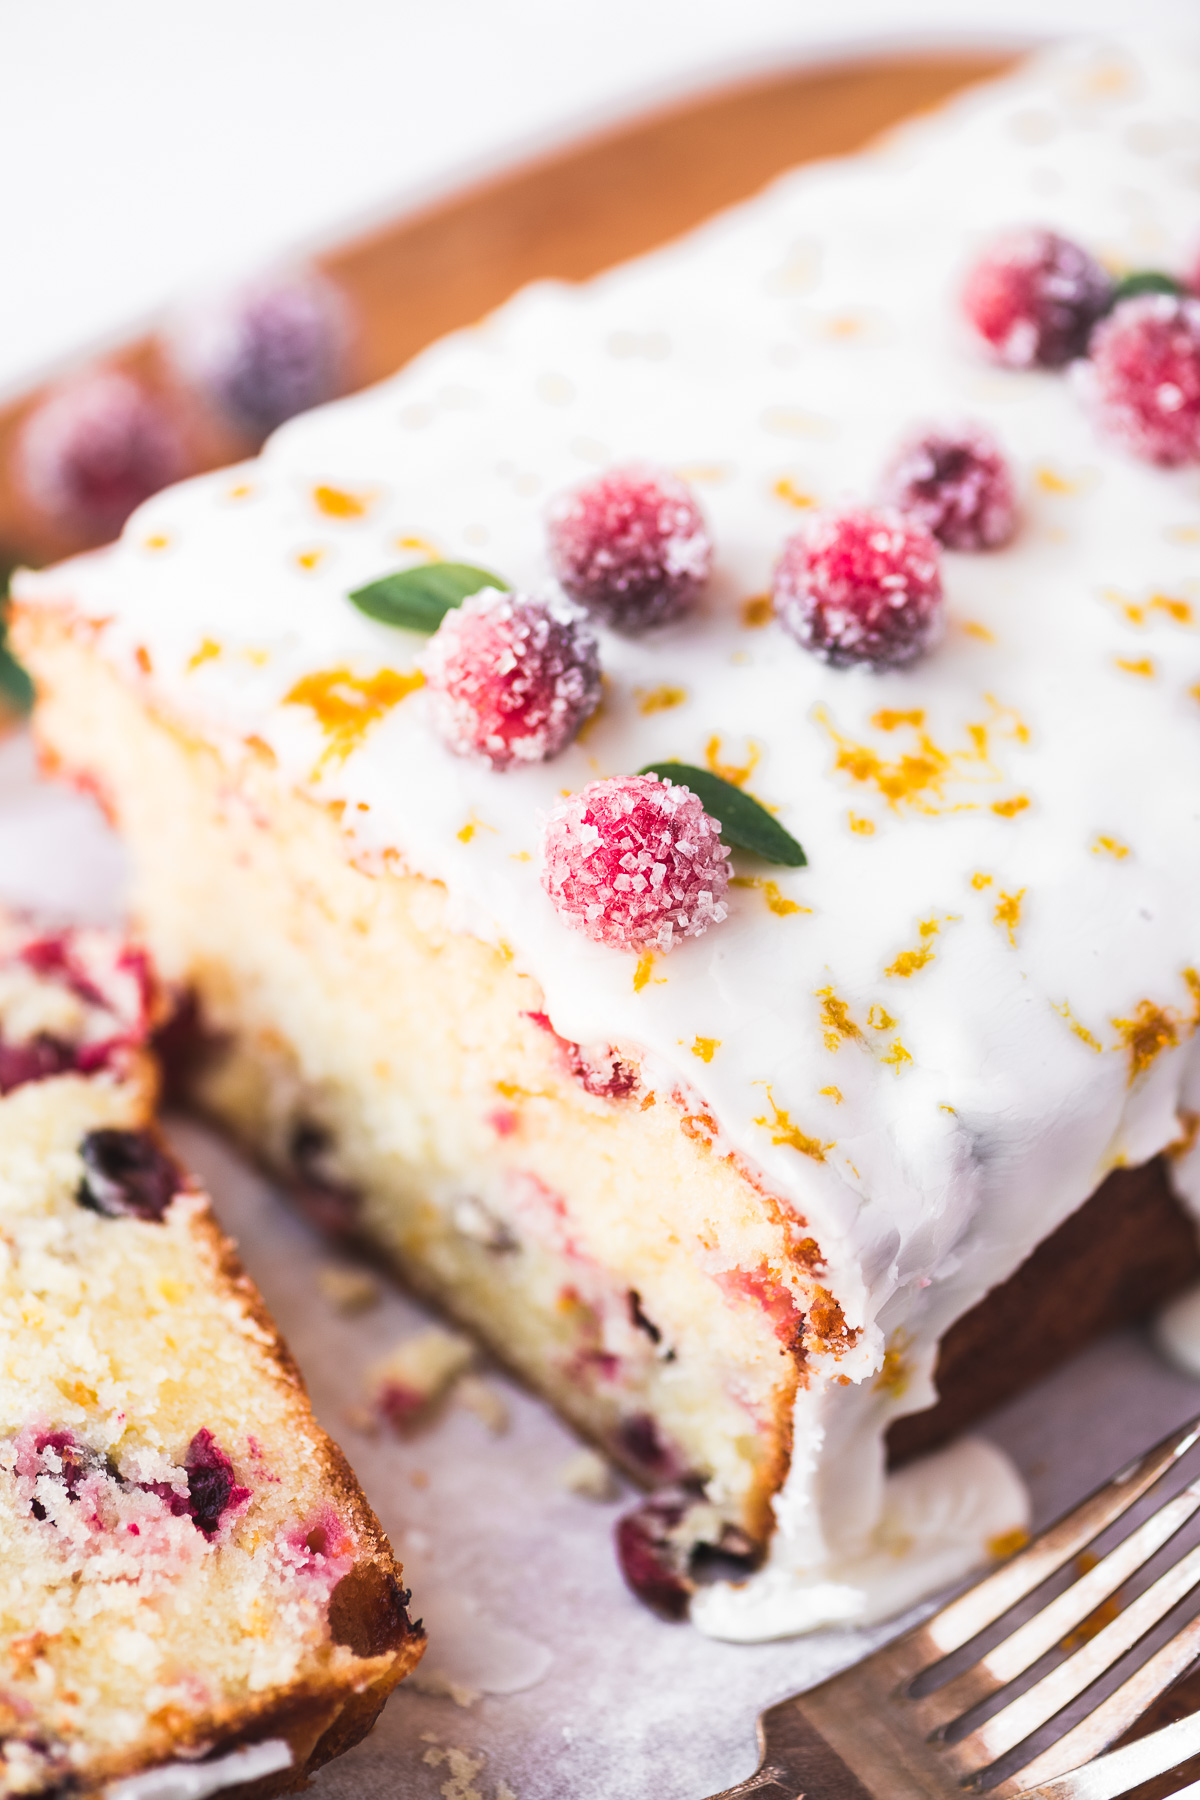 Cranberry orange loaf cake topped with sugared cranberries.